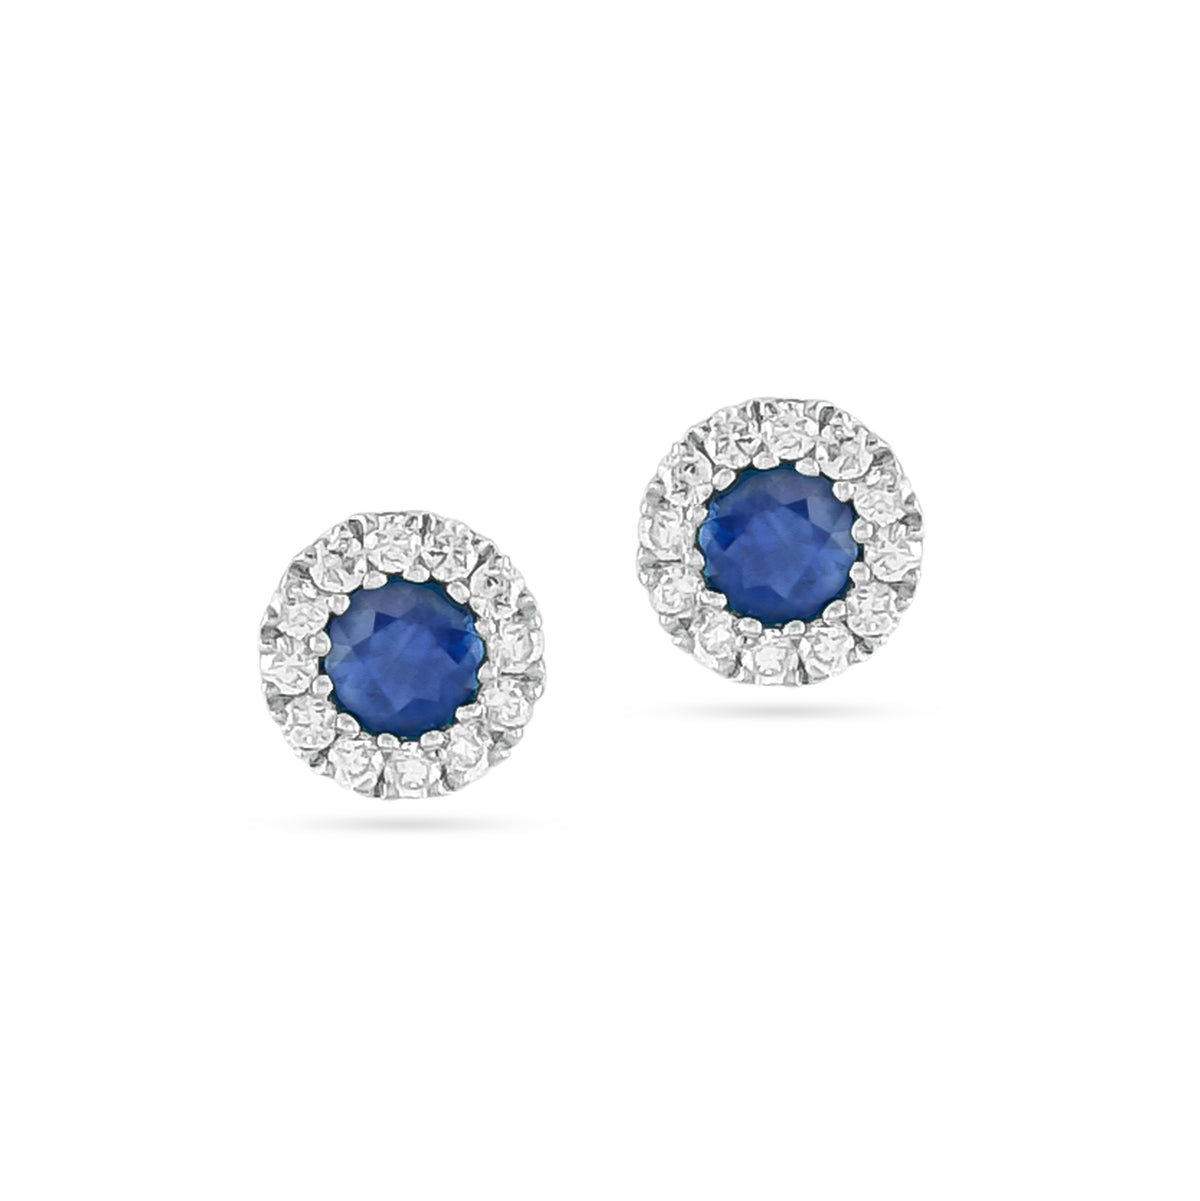 9ct White Gold Sapphire and Diamond Halo Stud Earrings